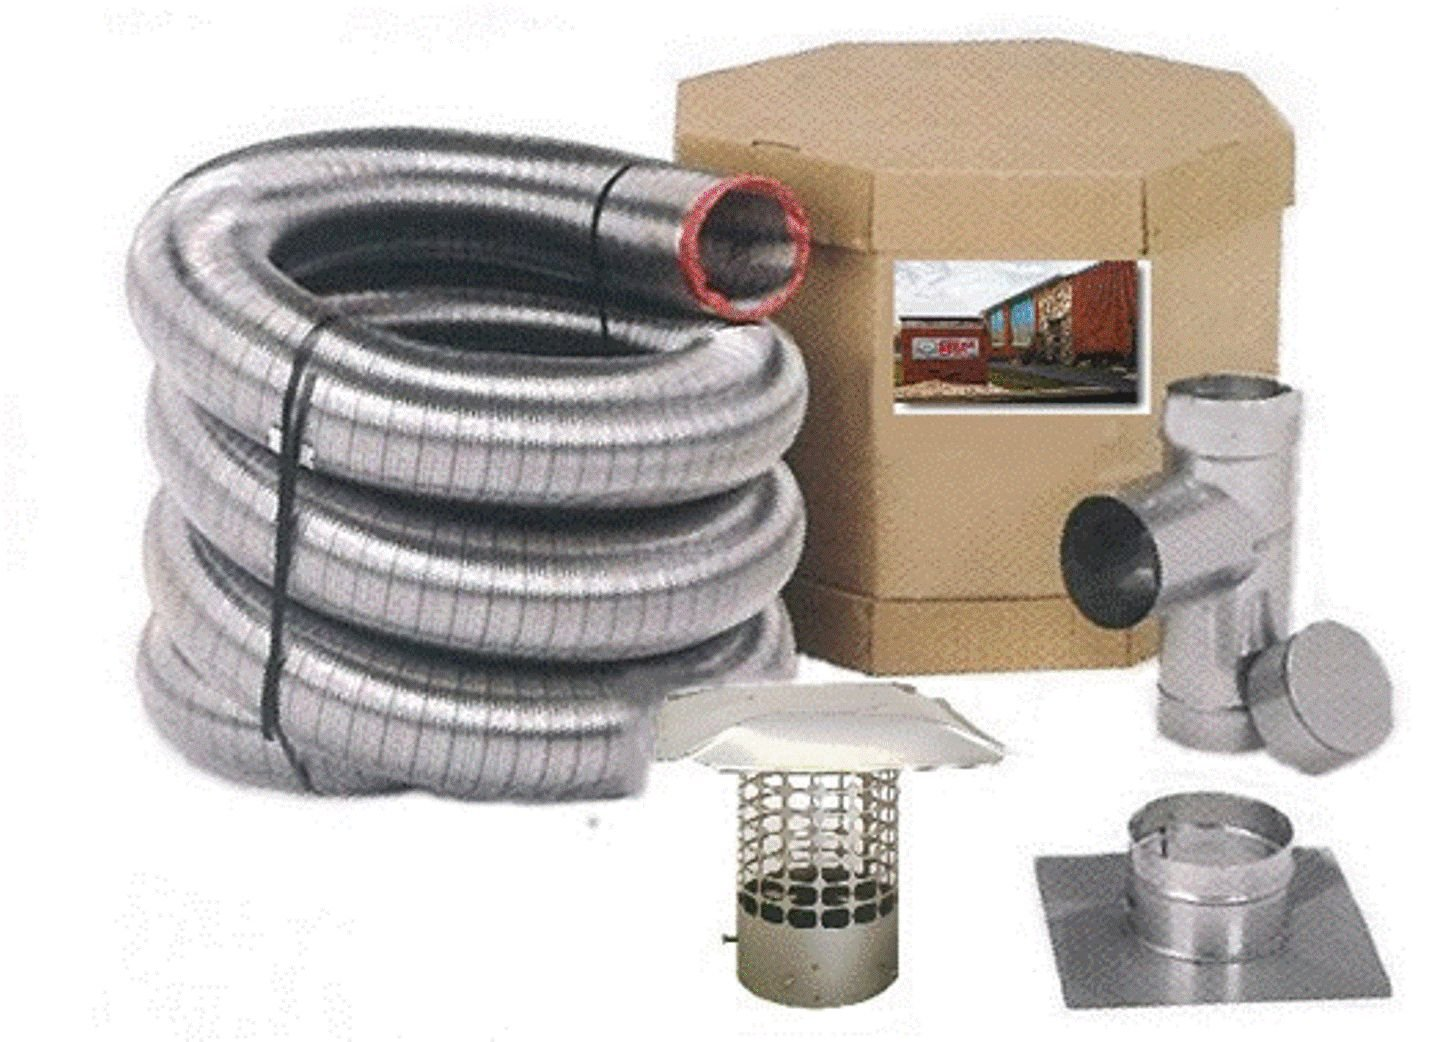 Forever Vent FL625SSK 6-Inch x 25-Feet Single Ply Chimney Liner, Stainless Steel by Forever Vent